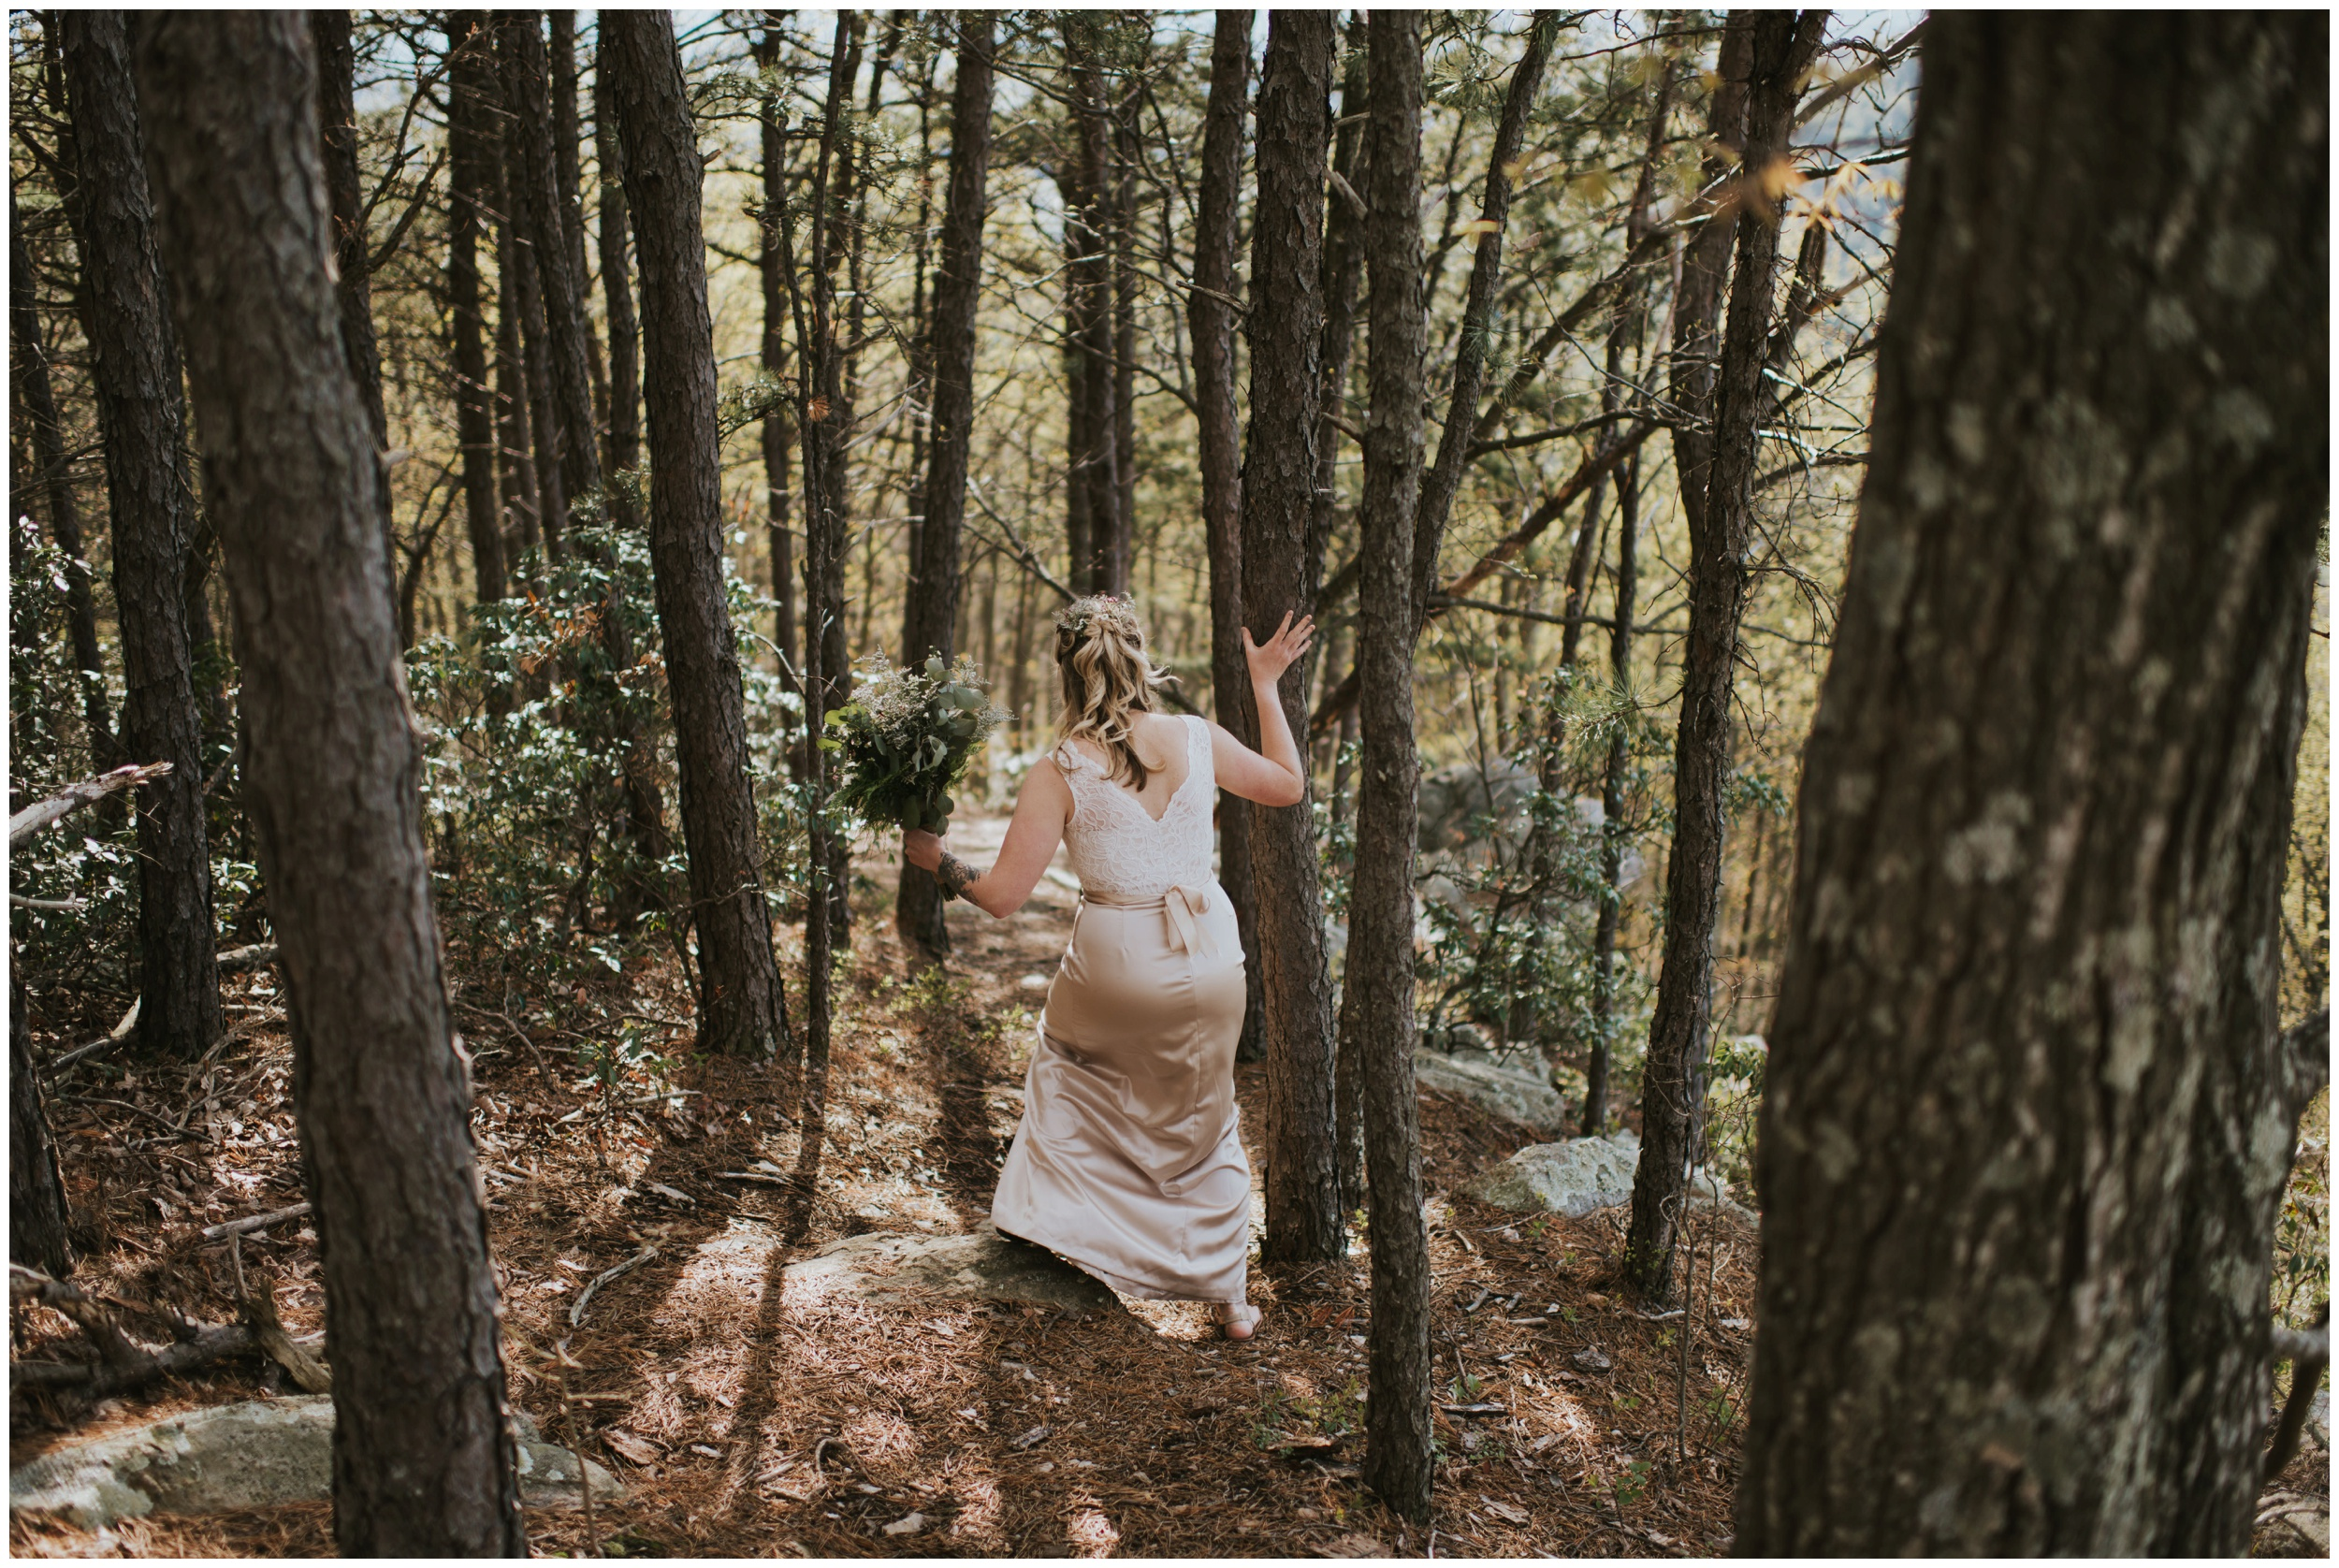 Roanoke Mountain Elopement Photographer | www.riversandroadsphotography.com